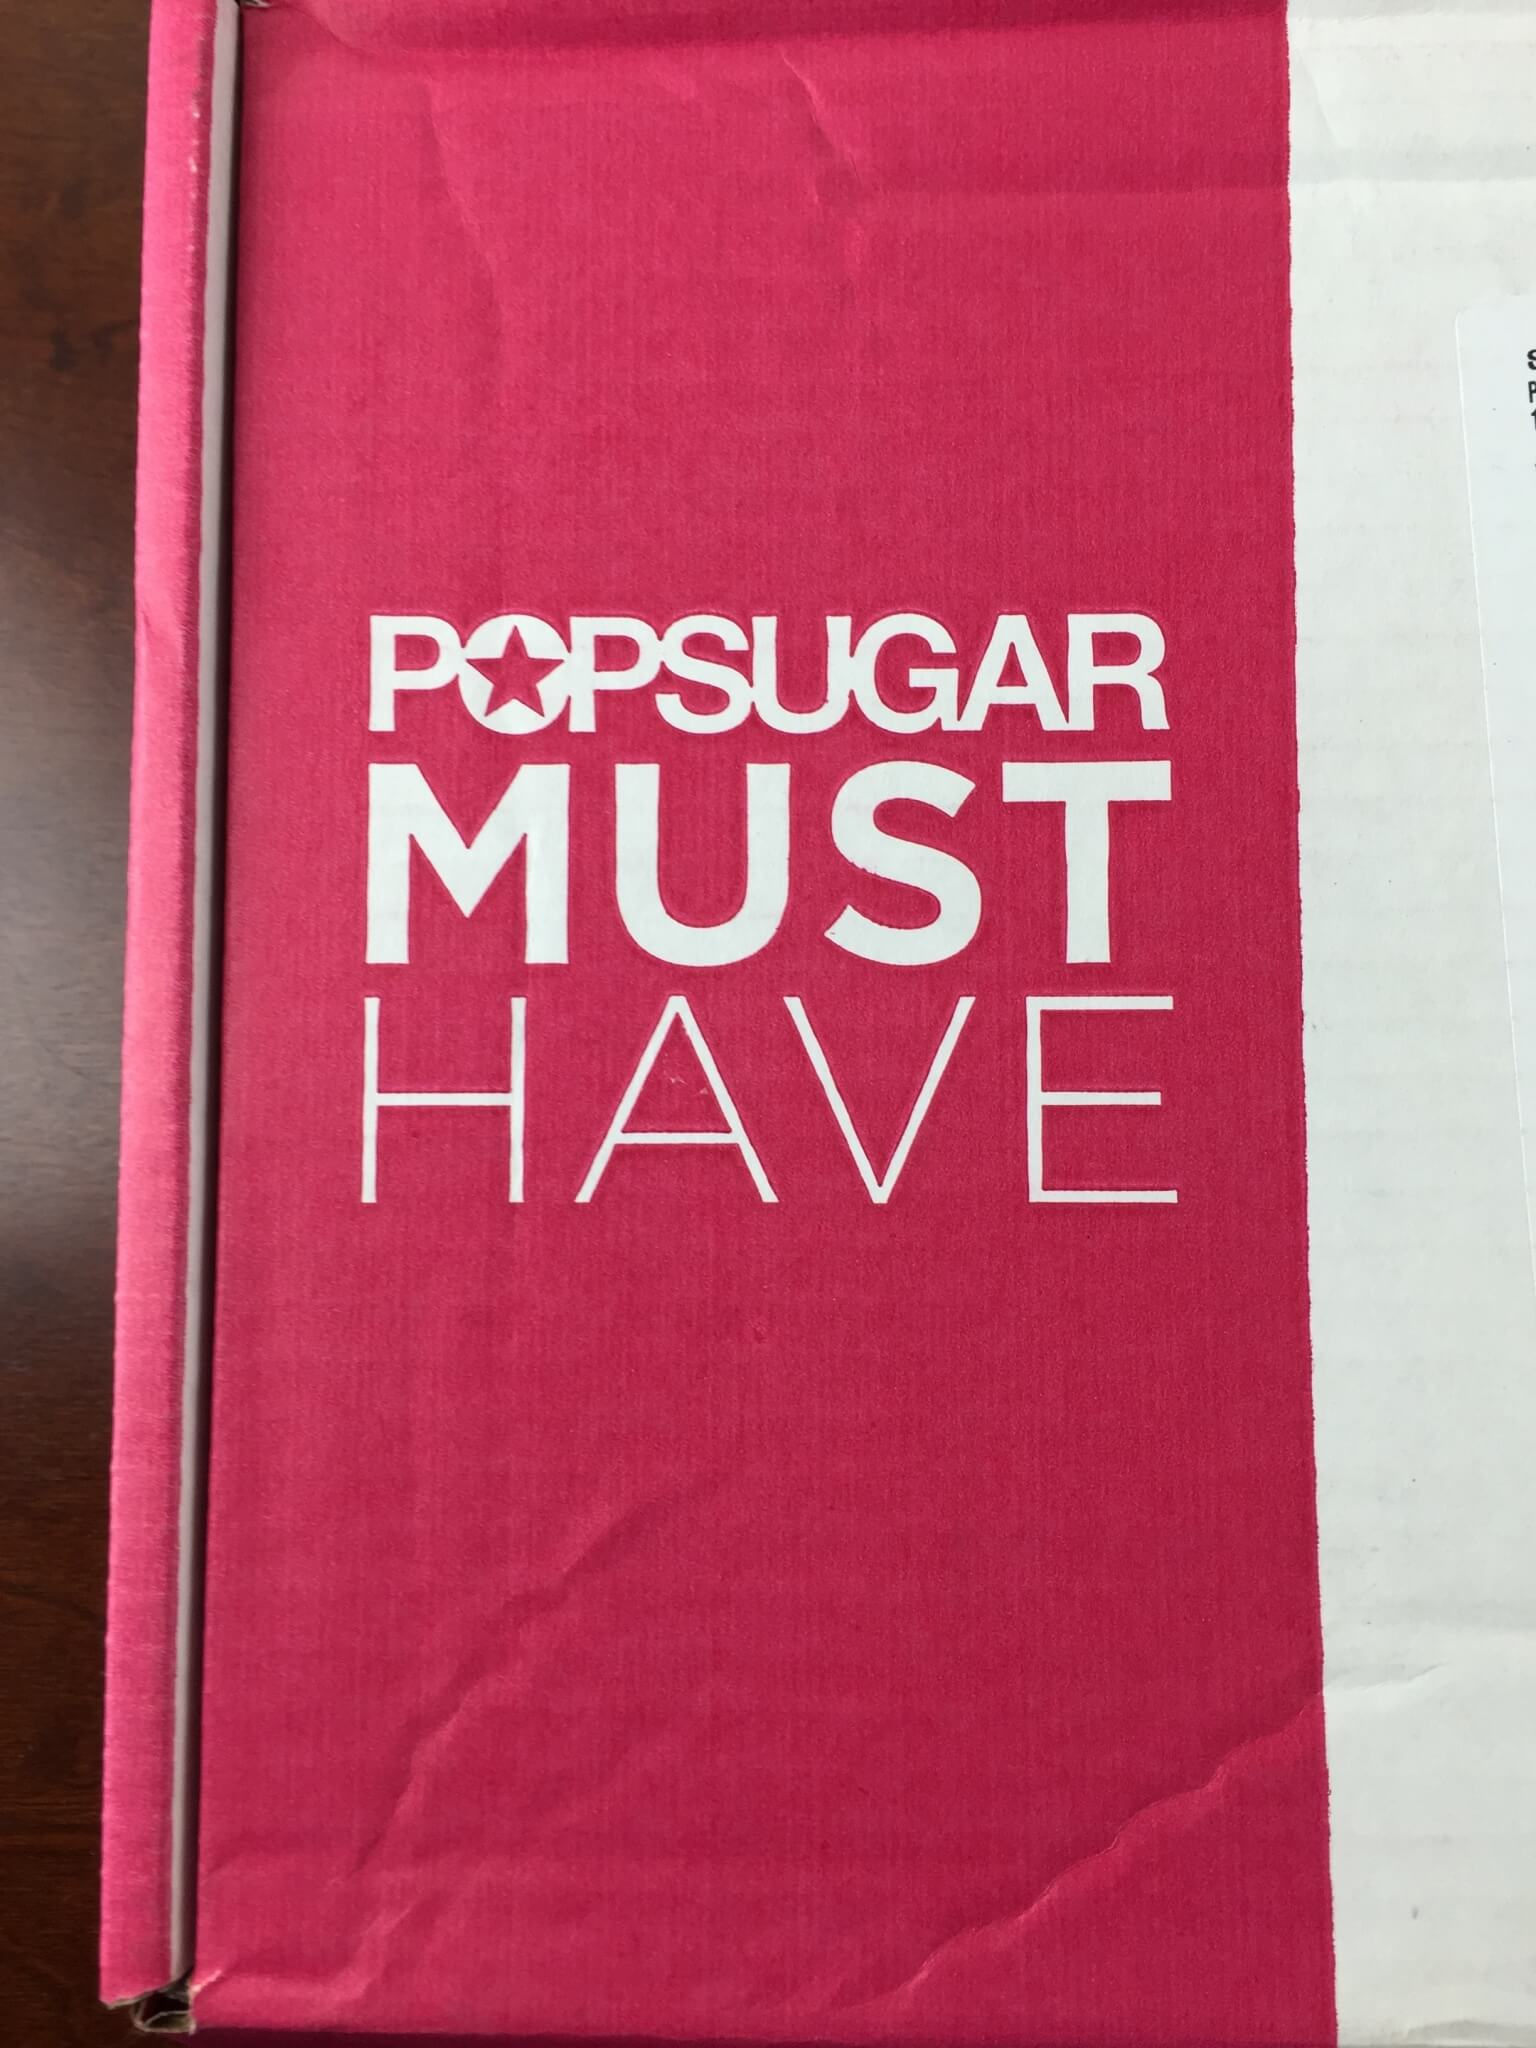 Popsugar Must Have Box April 2015 Review + Coupon